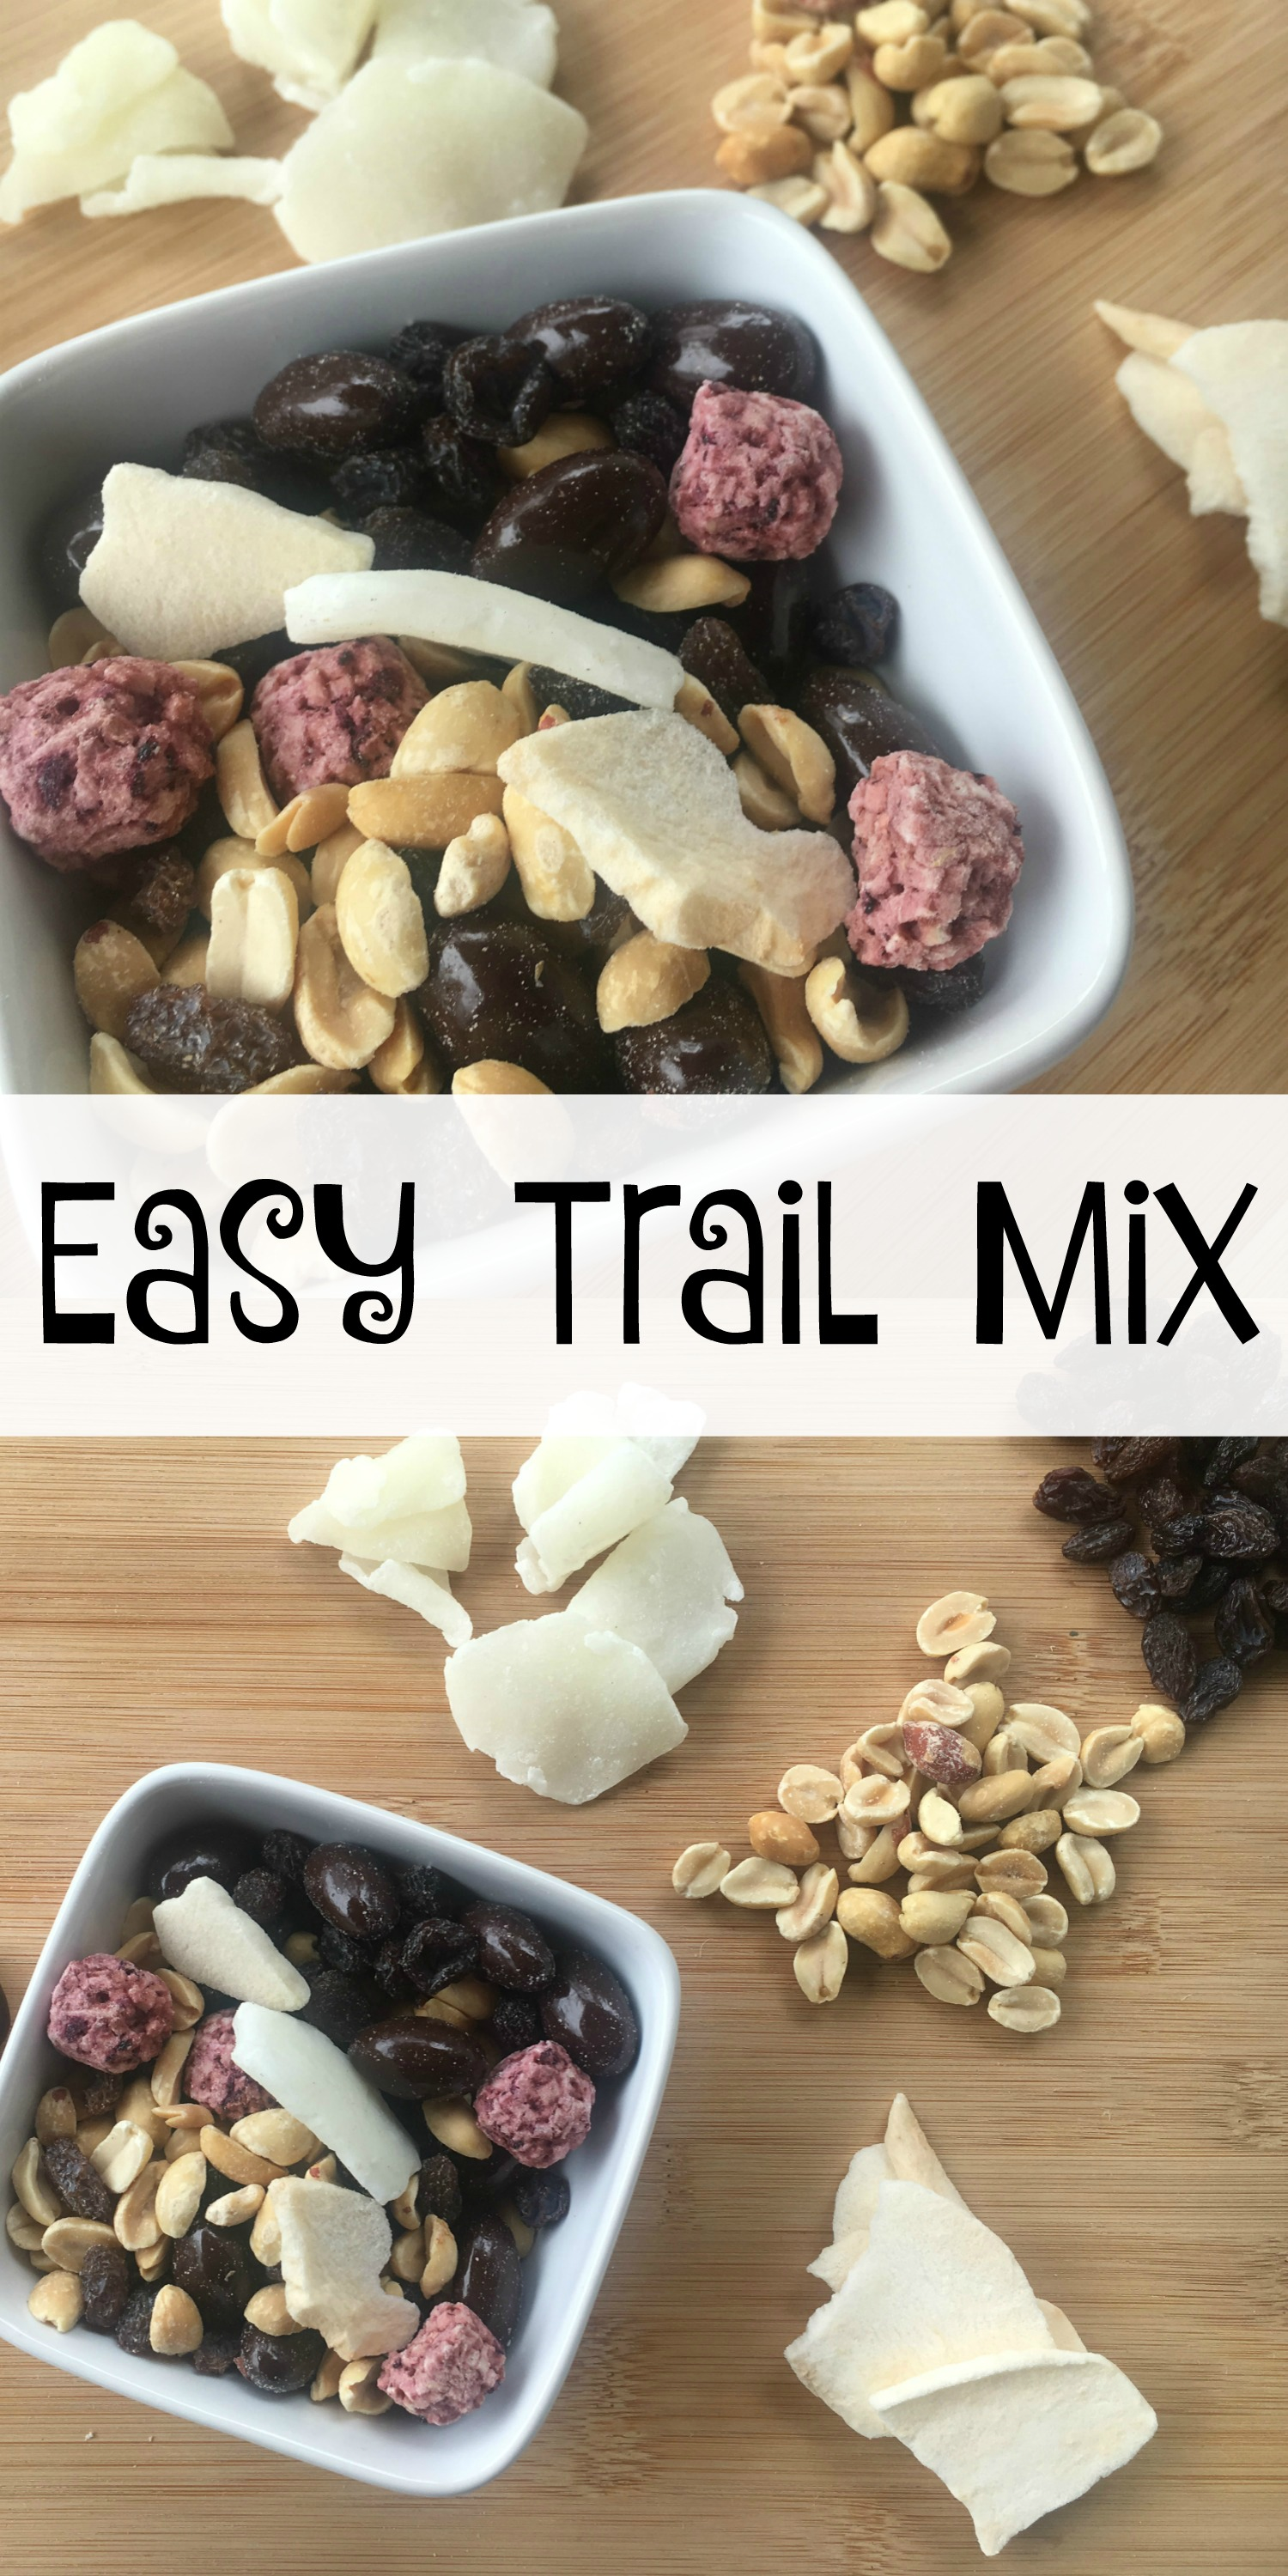 Trail Mix #CVS #CVSSpringSnacking